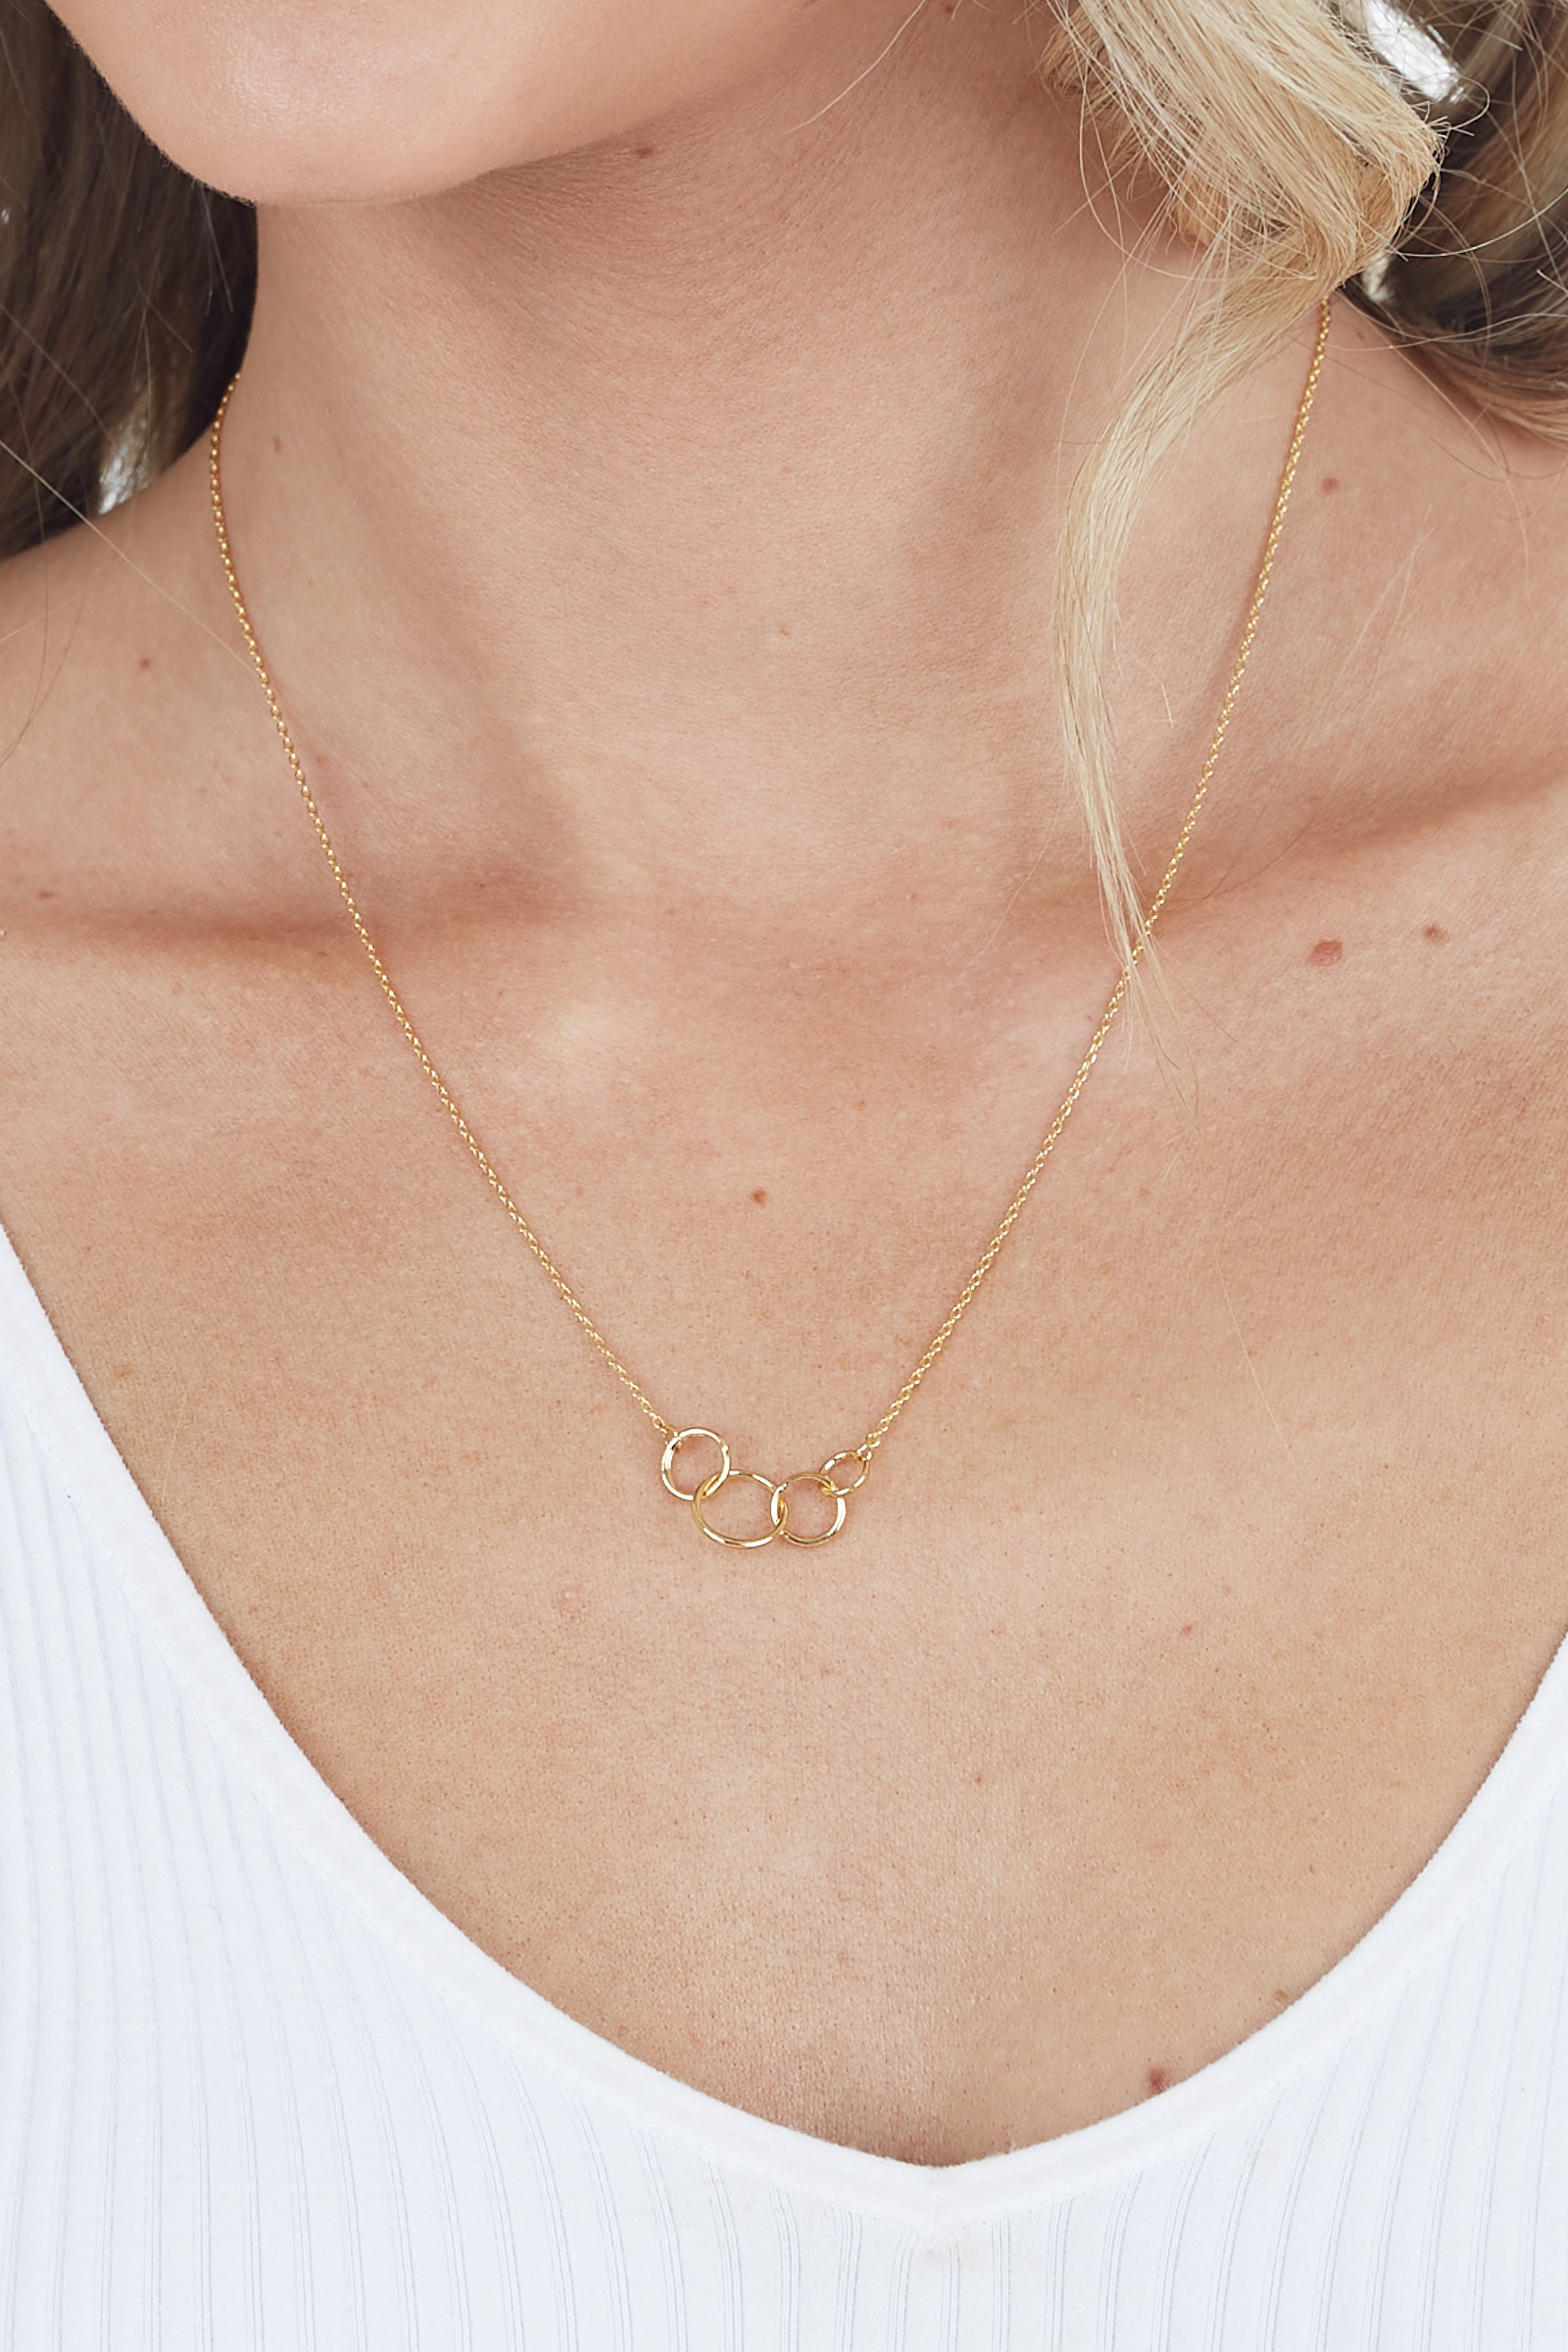 Gold Interlocking Circles Necklace with Dainty Chain